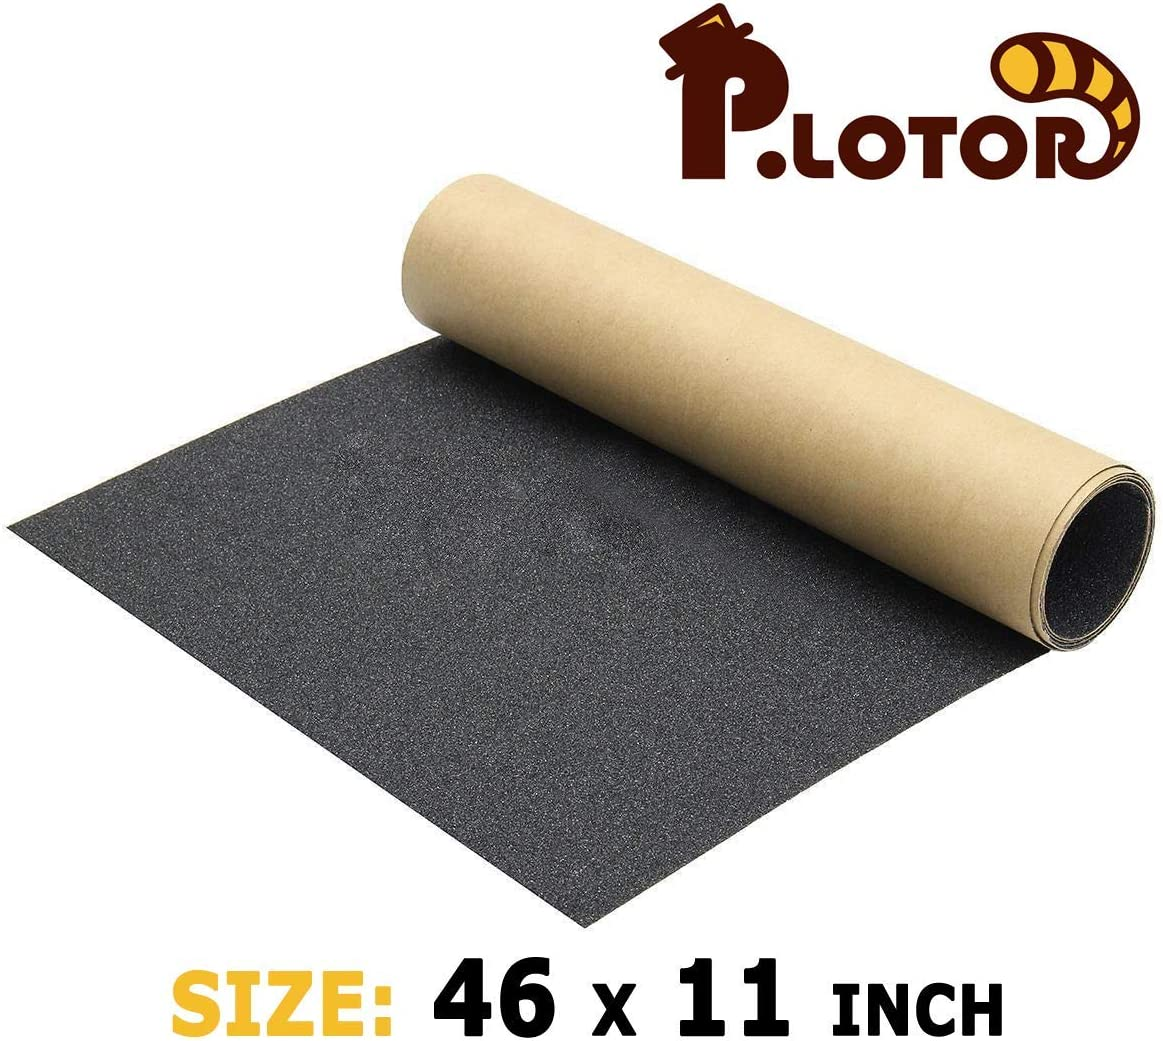 "P.LOTOR 46"" x 11"" Skateboard Grip Tape, Bubble Free Waterproof Black Anti Slip Griptape for Gun, Scooter, Longboard, Stairs, Non Slip Grips, Anti Skid Adhesive Tape (117x28cm)"